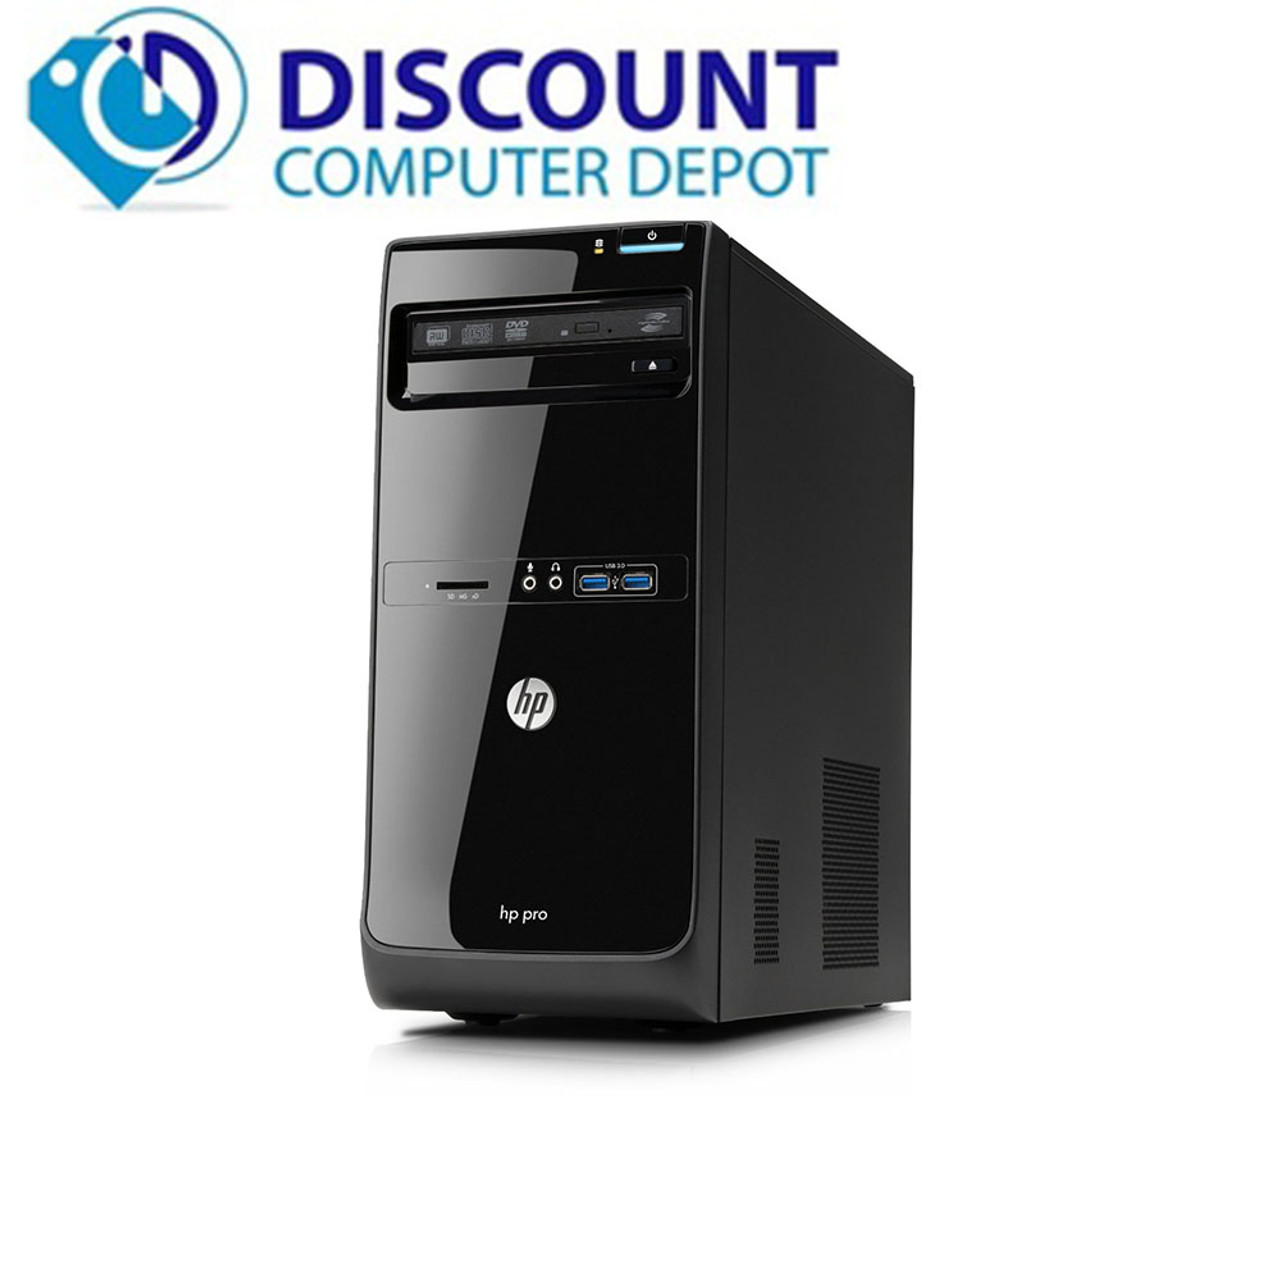 HP Pro Desktop Computer Core i5-3470 4GB 250GB DVD Windows 10 Wifi